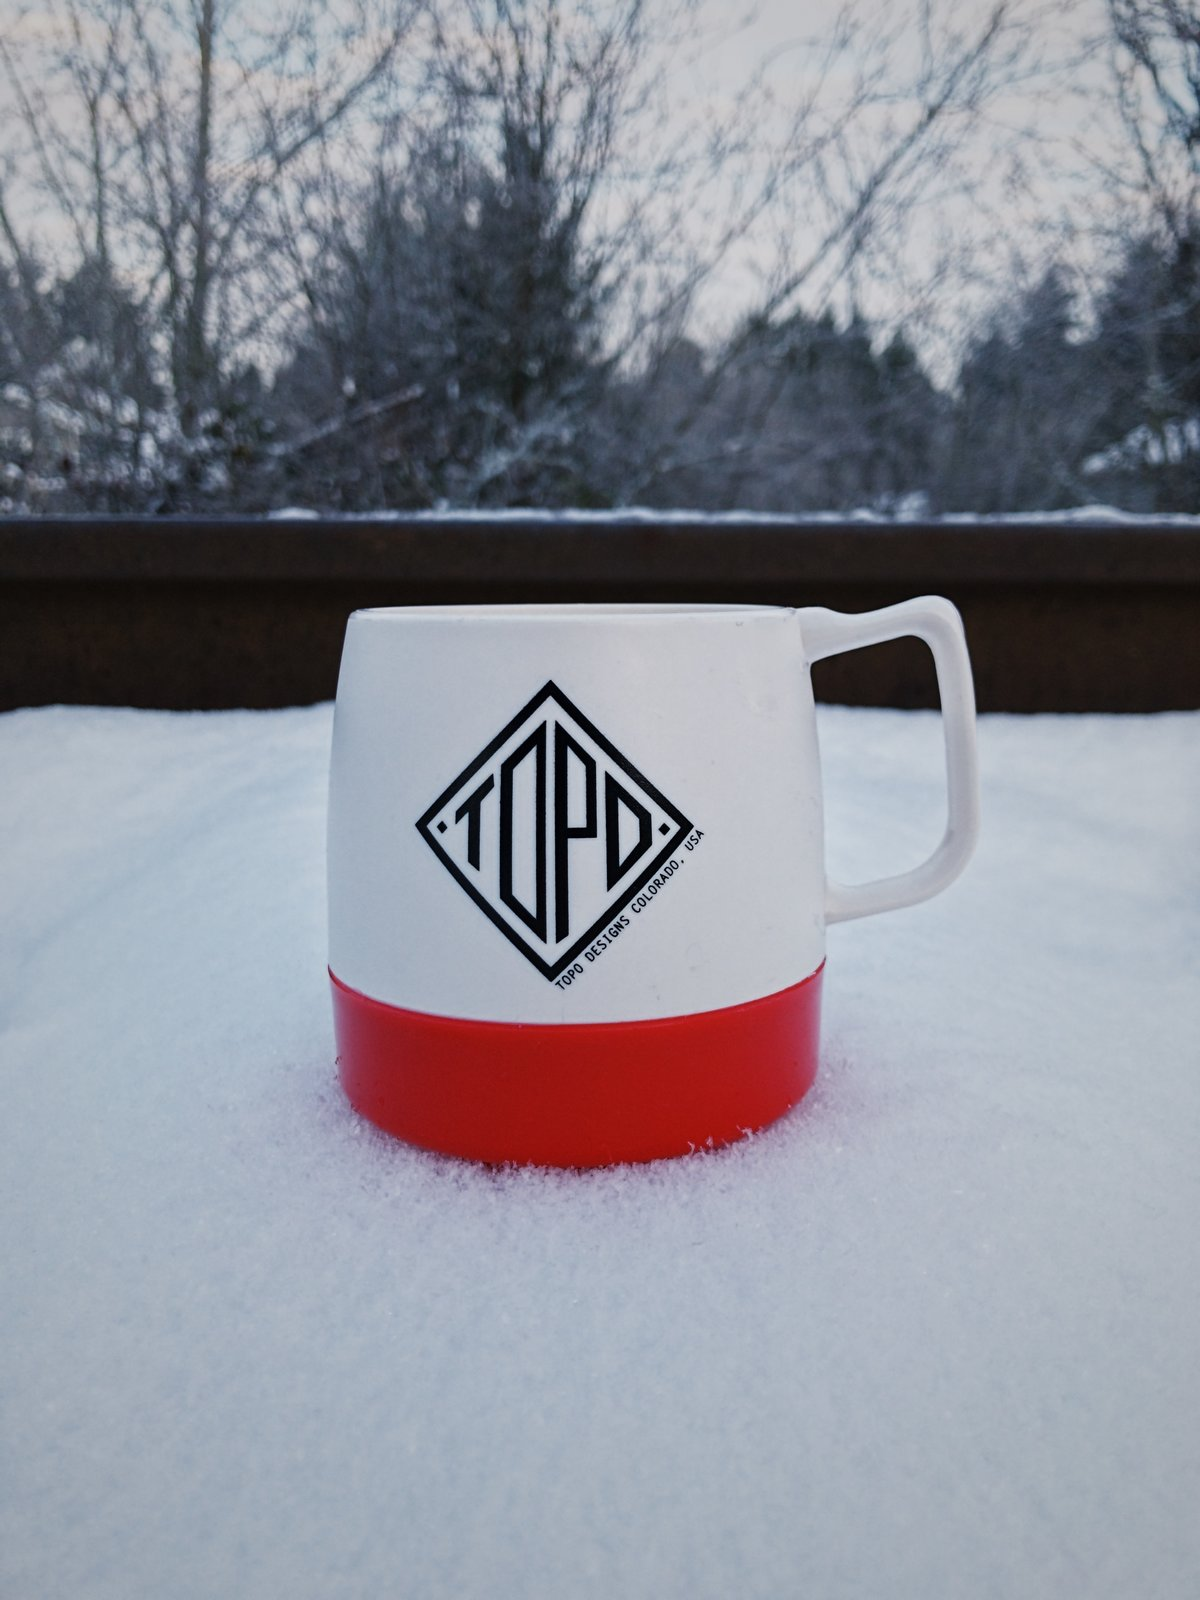 The Topo mug seemed right at home in the frosty cold surroundings.  Photo 5 of 10 in VSCO RAW/X and Topo Designs